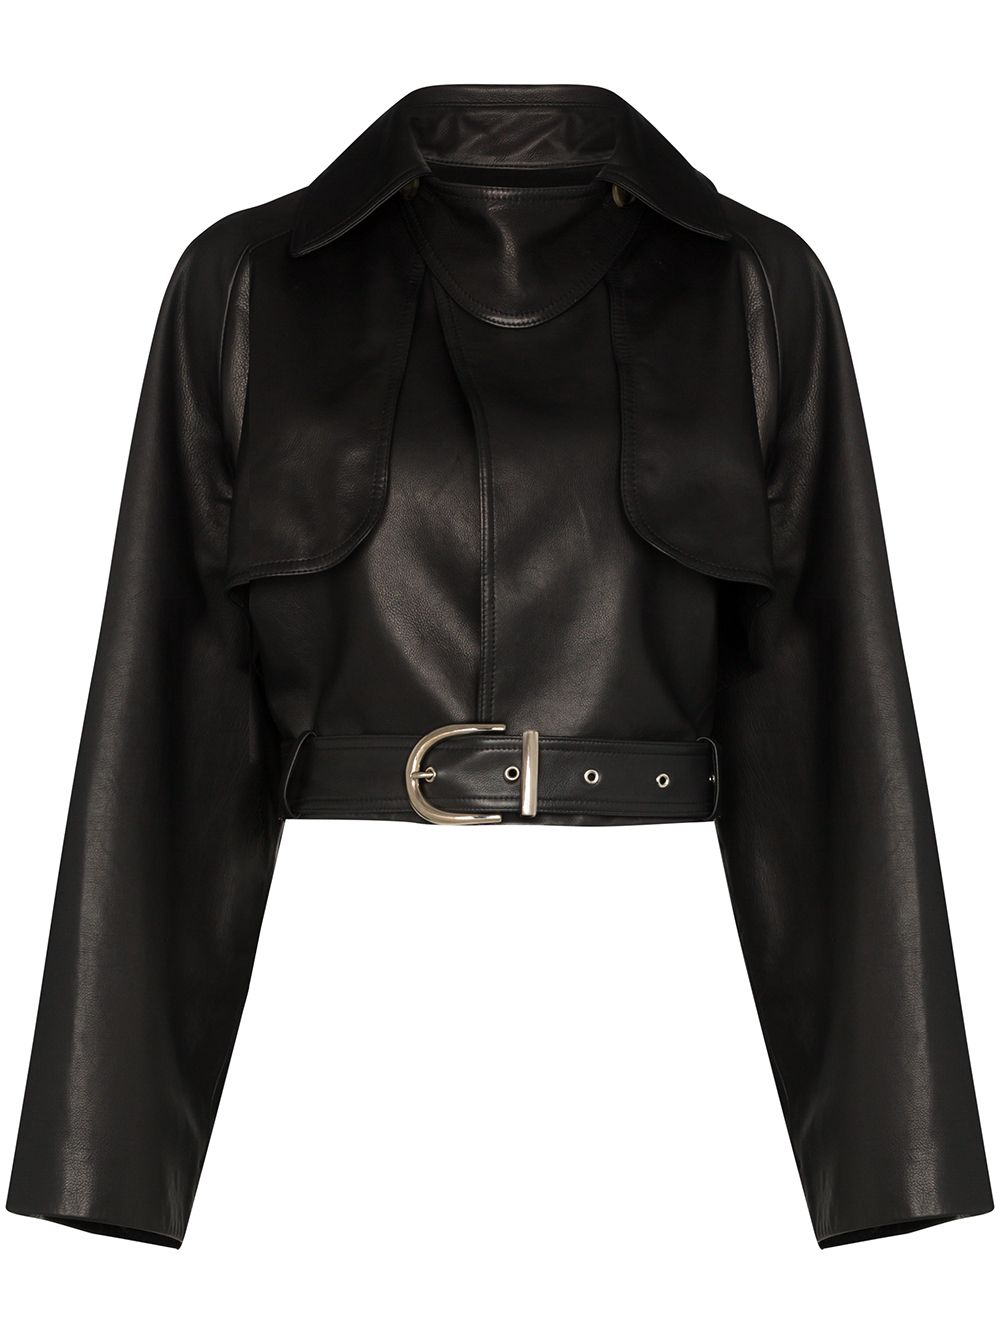 KHAITE Krista Cropped Leather Jacket